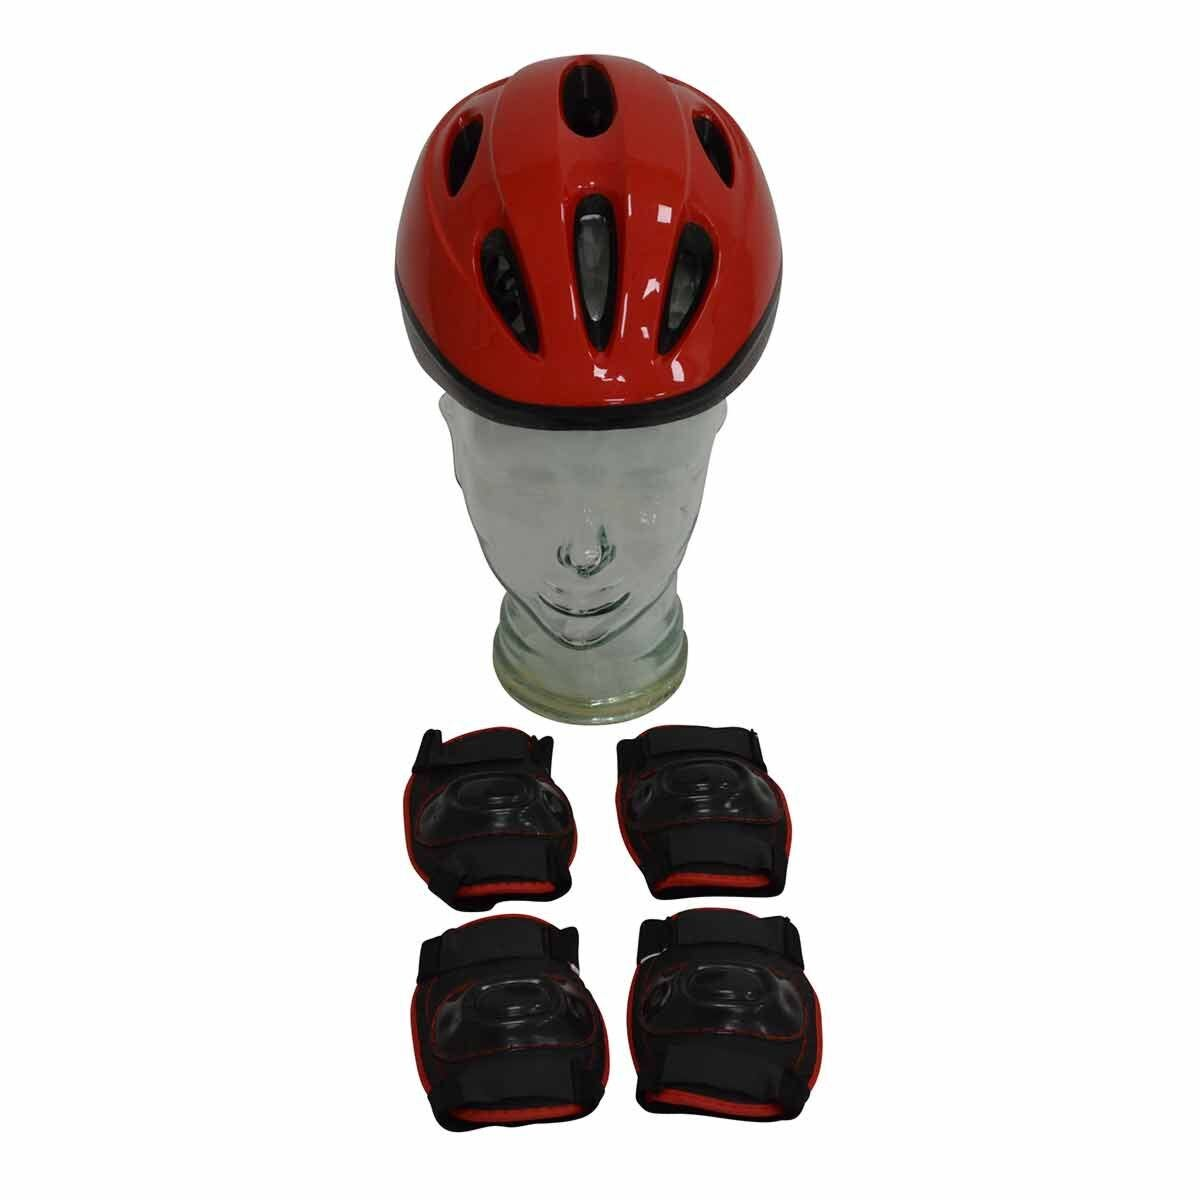 One23 Childrens Helmet and Protective Pad Set 48-56cm